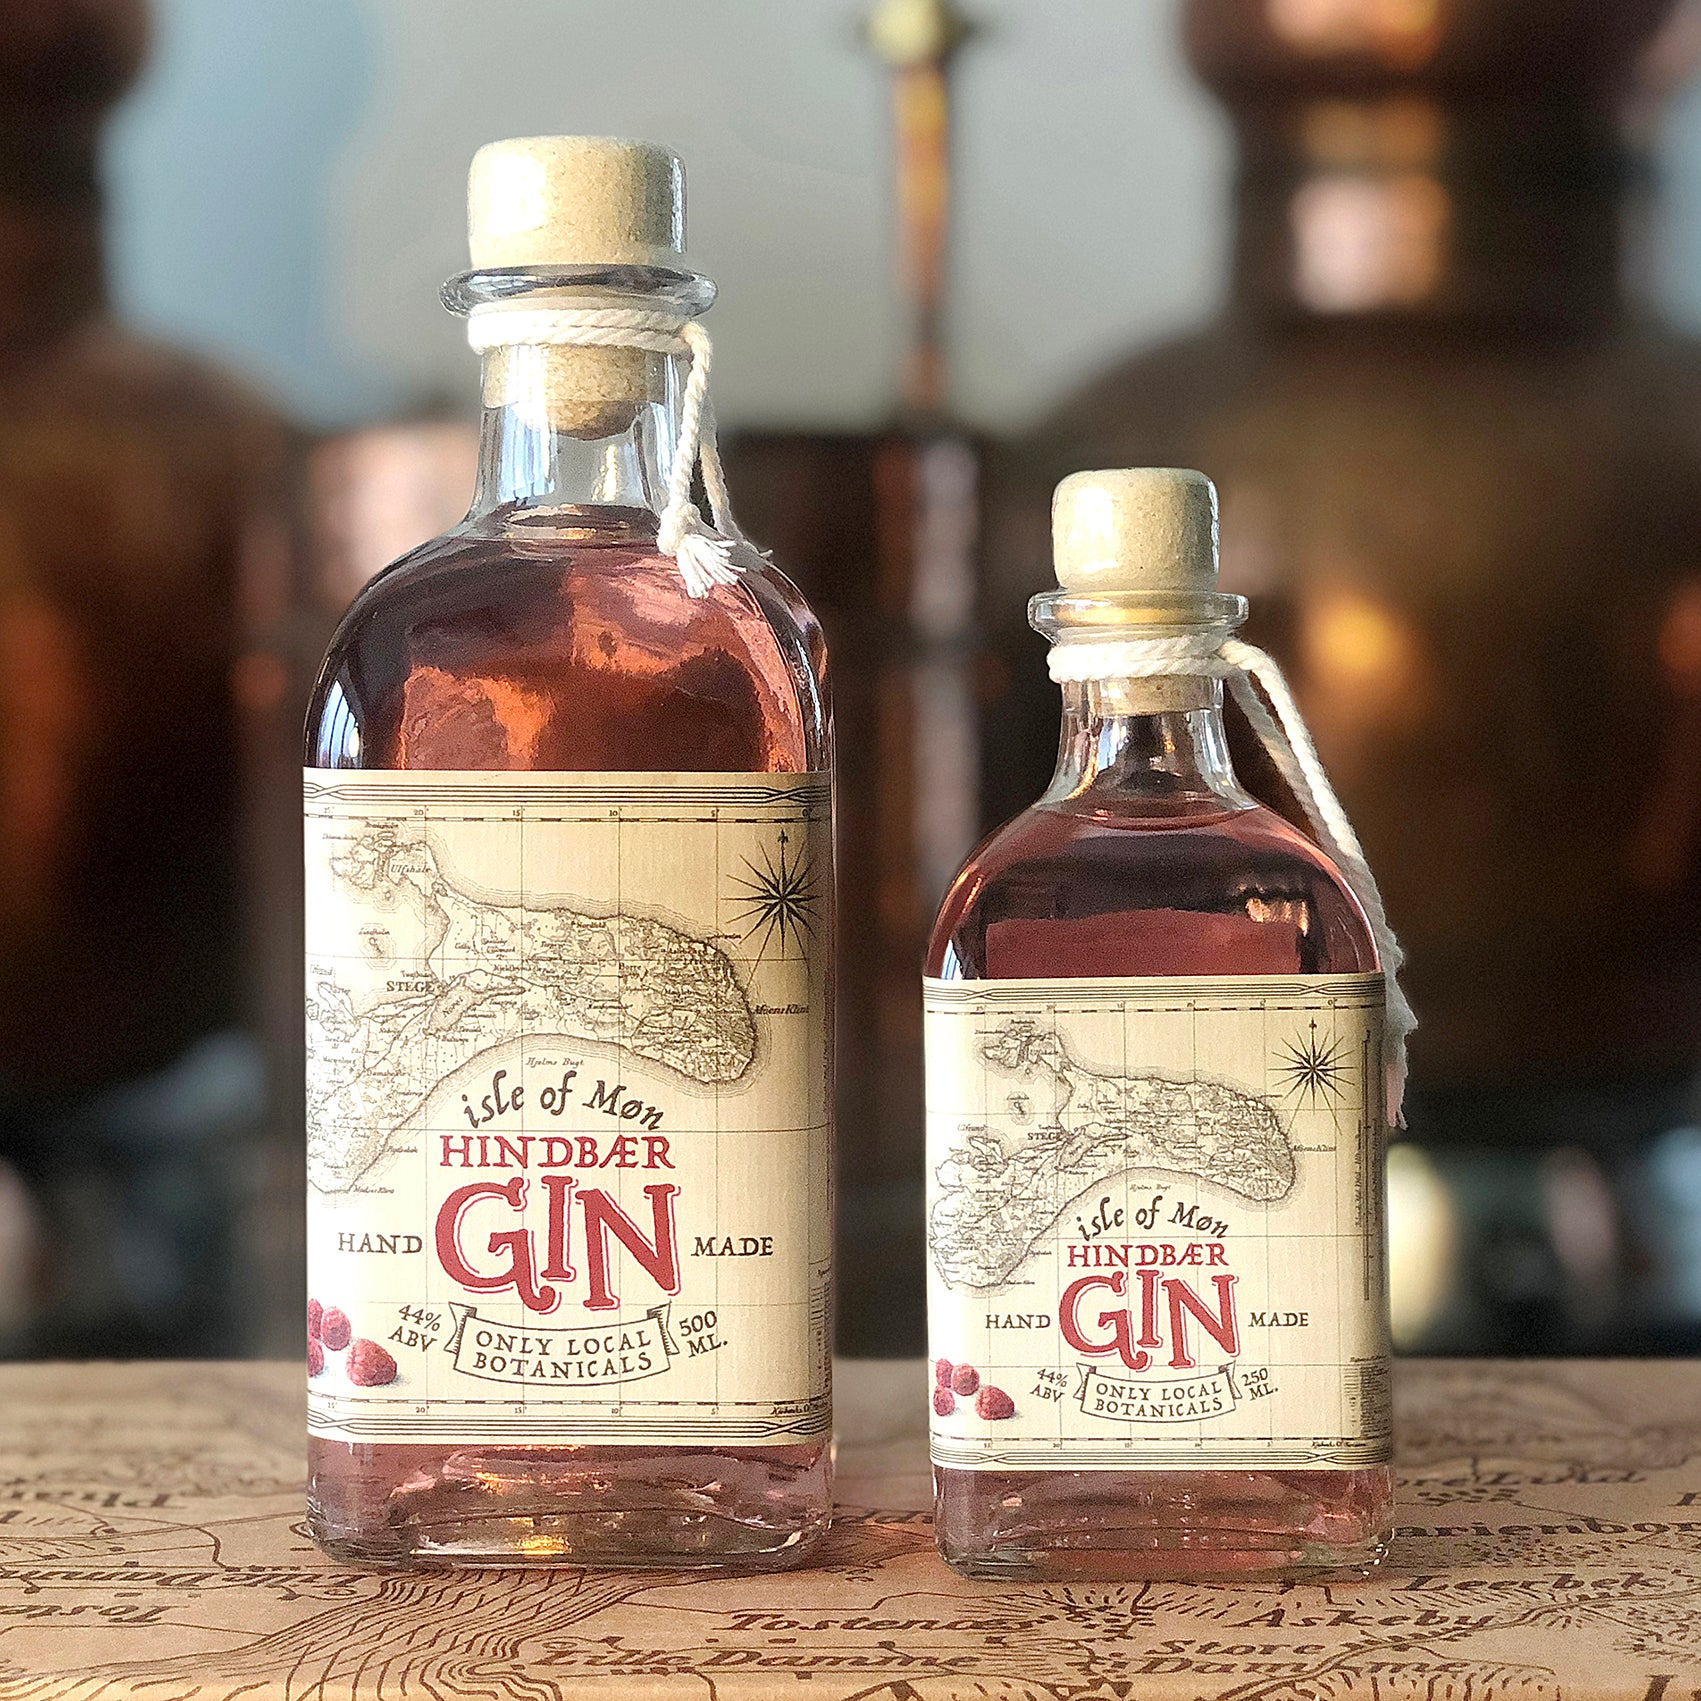 Isle of Møn Hindbær Gin - Isle of Møn Spirits